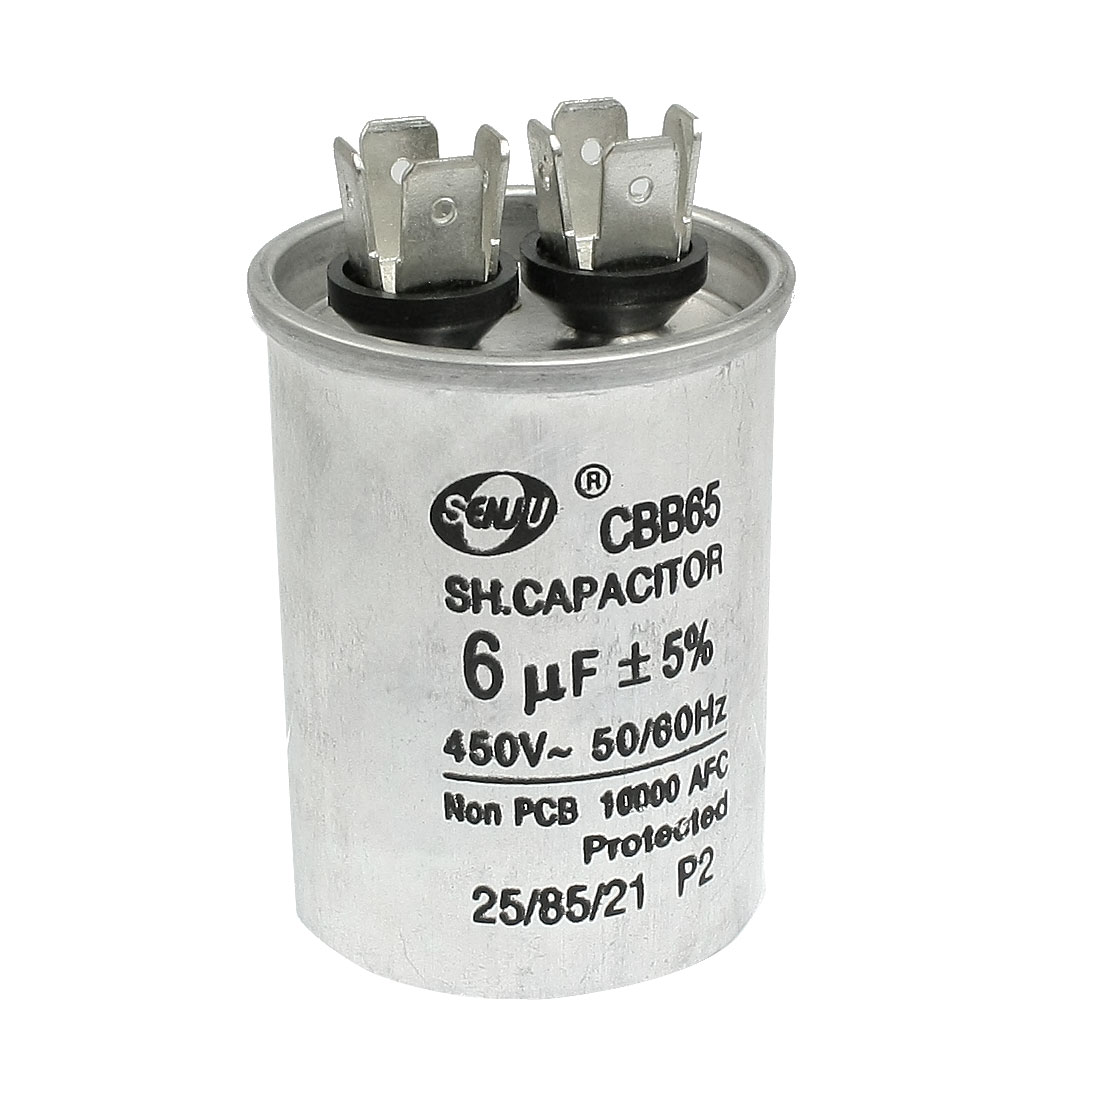 CBB65 Air Conditioner Polypropylene Film Motor Capacitor 6uF AC 450V